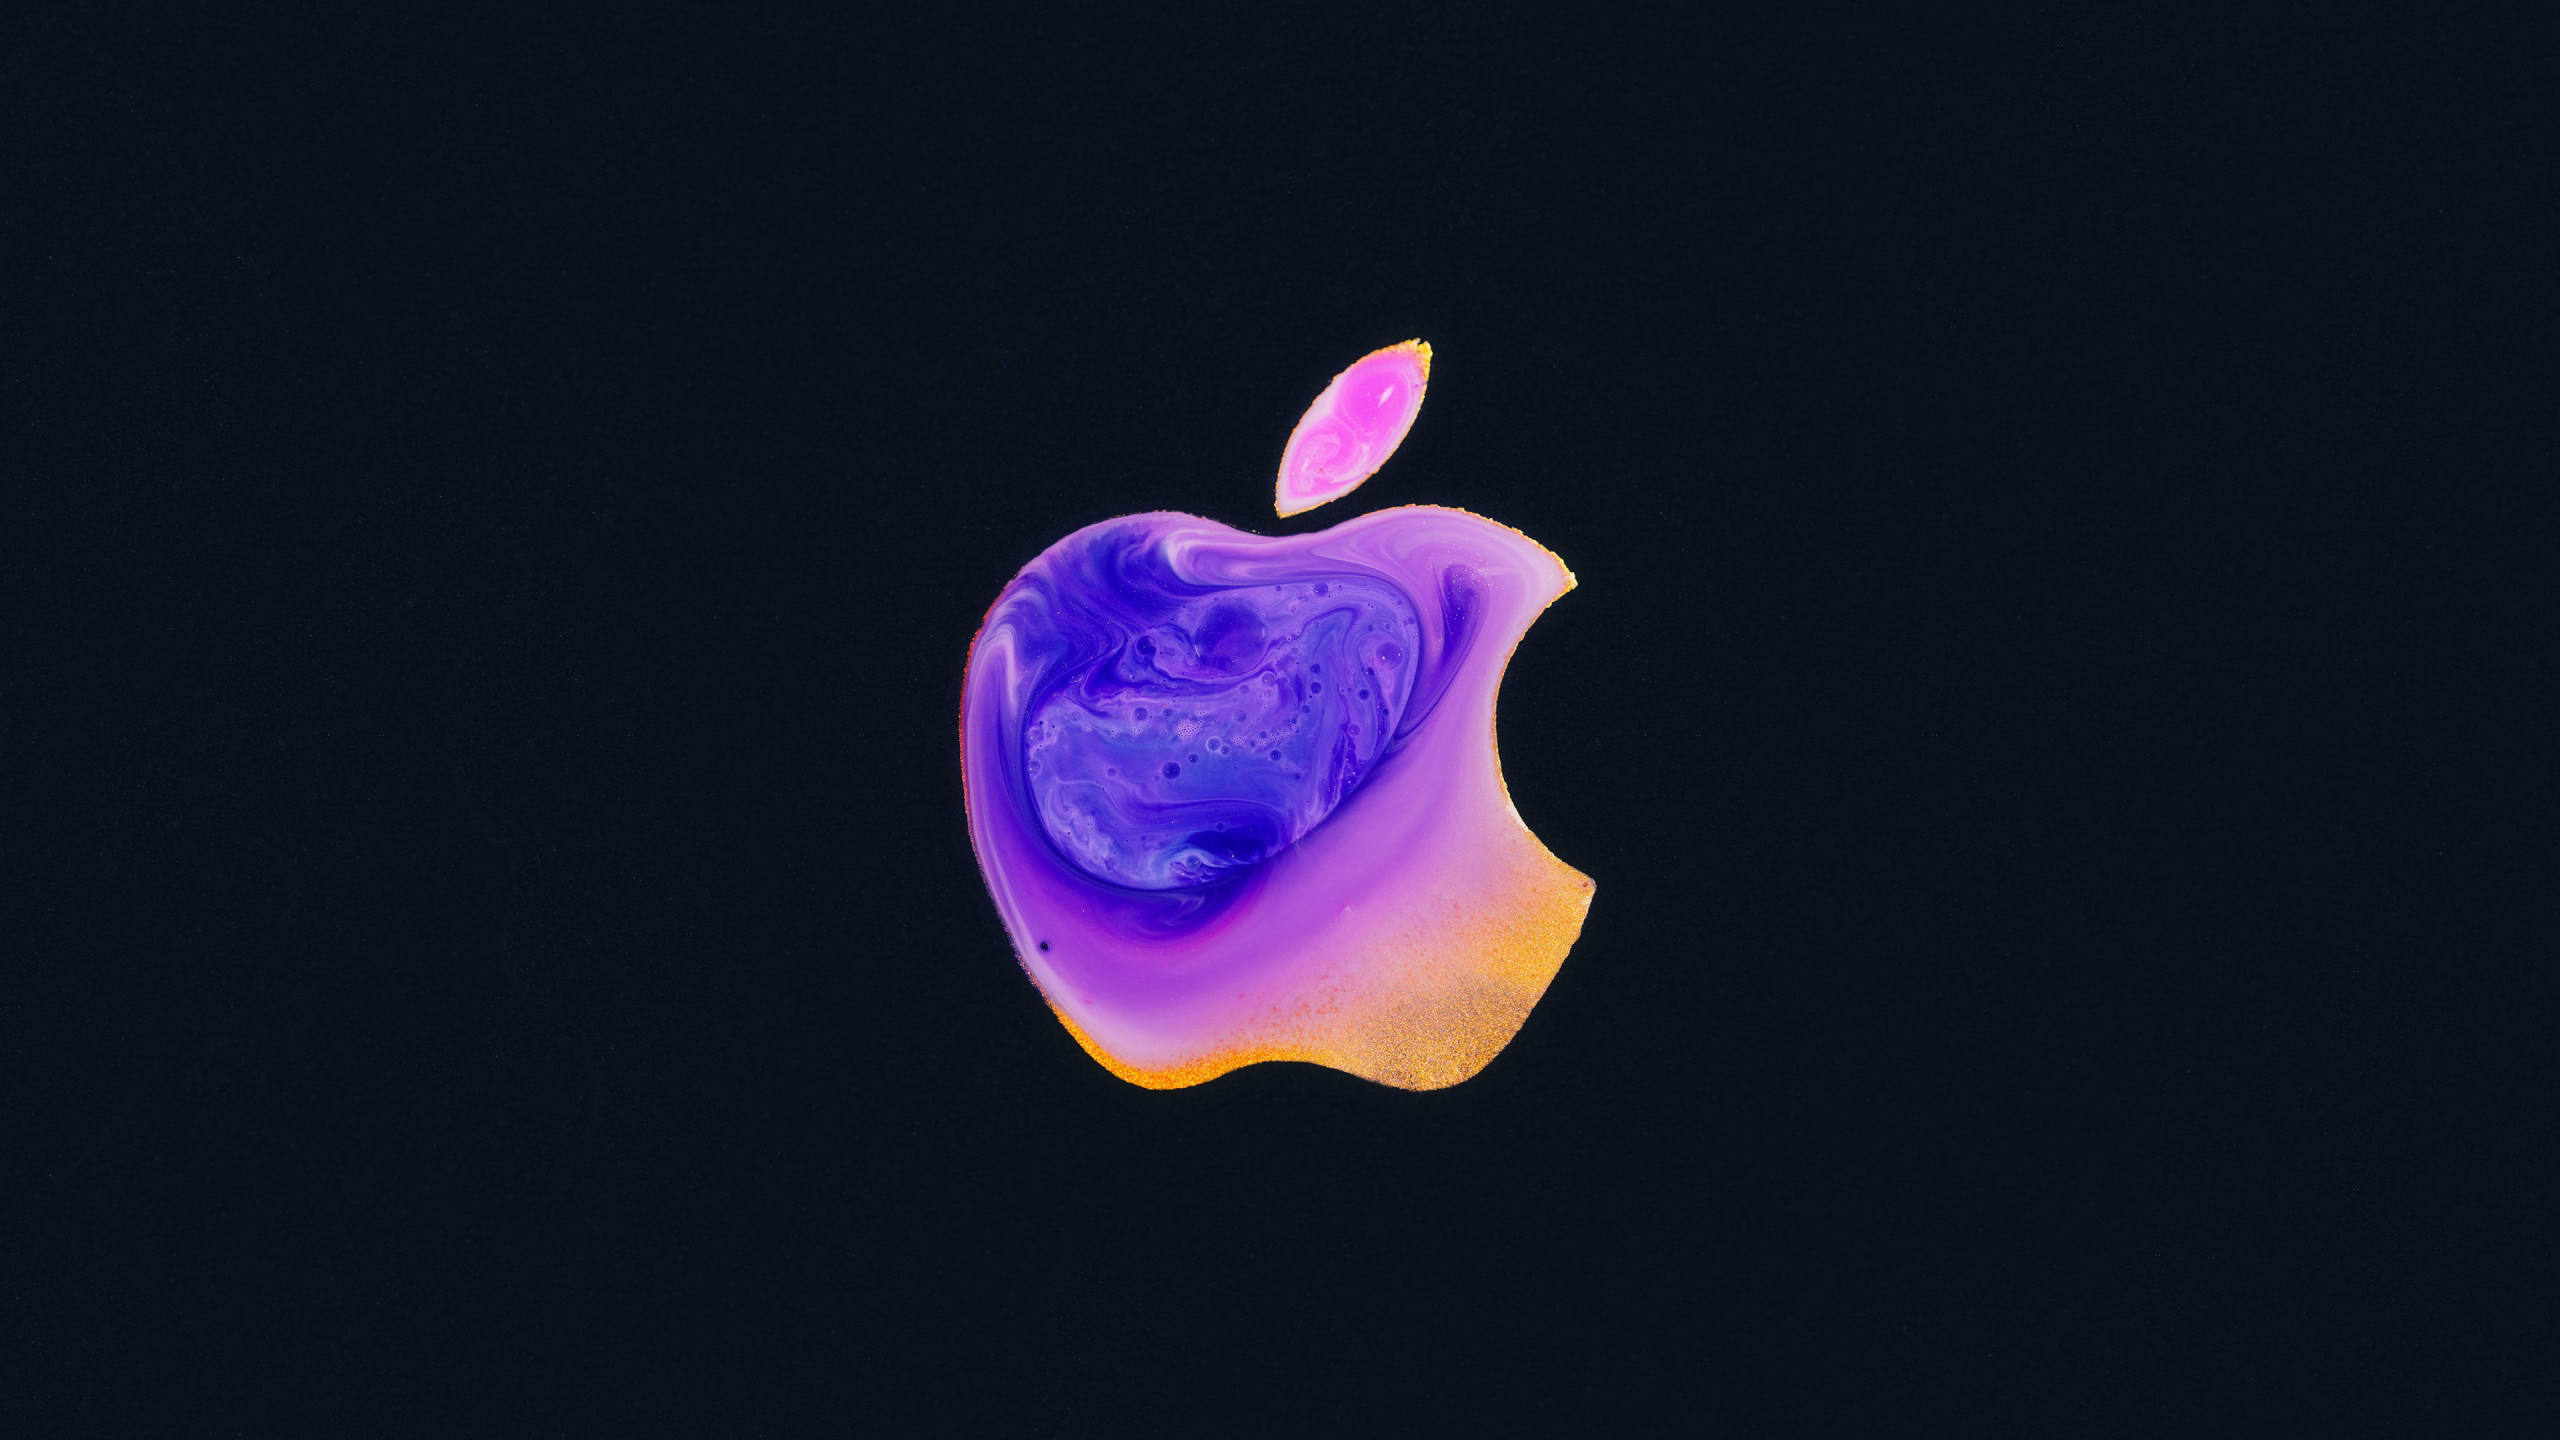 2560x1440 Iphone 12 4k Art 1440p Resolution Wallpaper Hd Hi Tech 4k Wallpapers Images Photos And Background Wallpapers Den